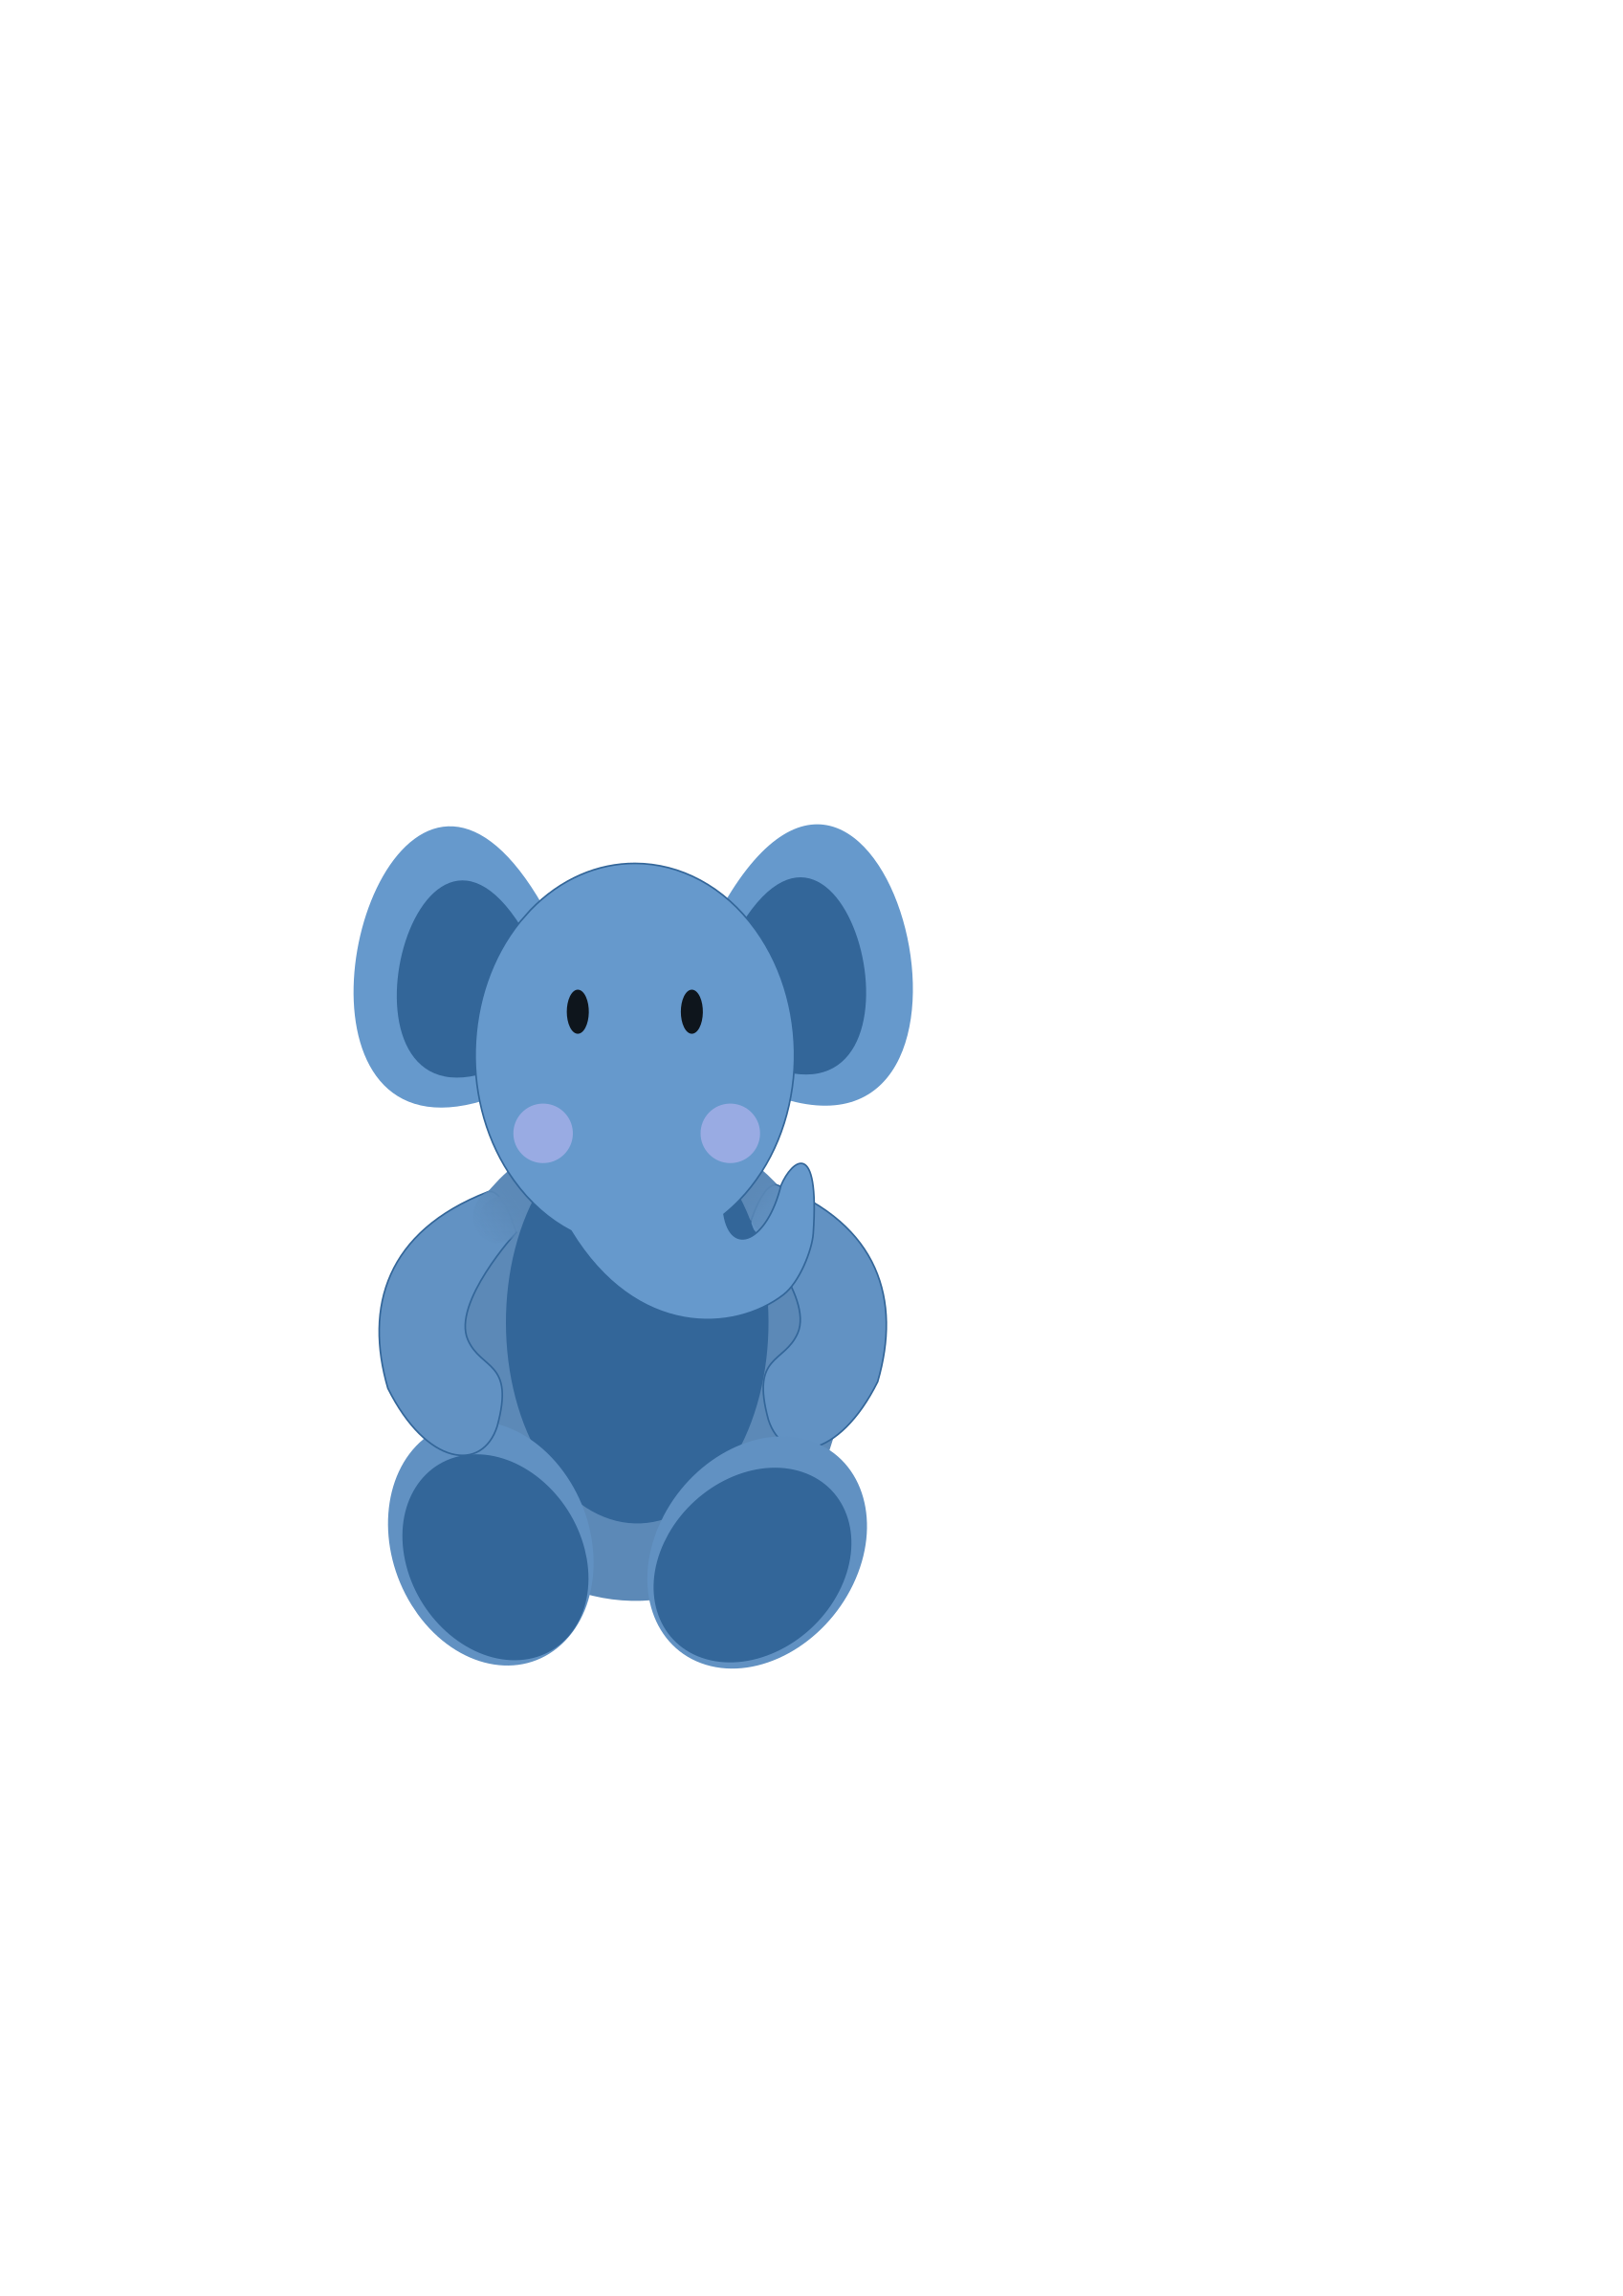 Elephants svg grey baby. Clipart elephant big image